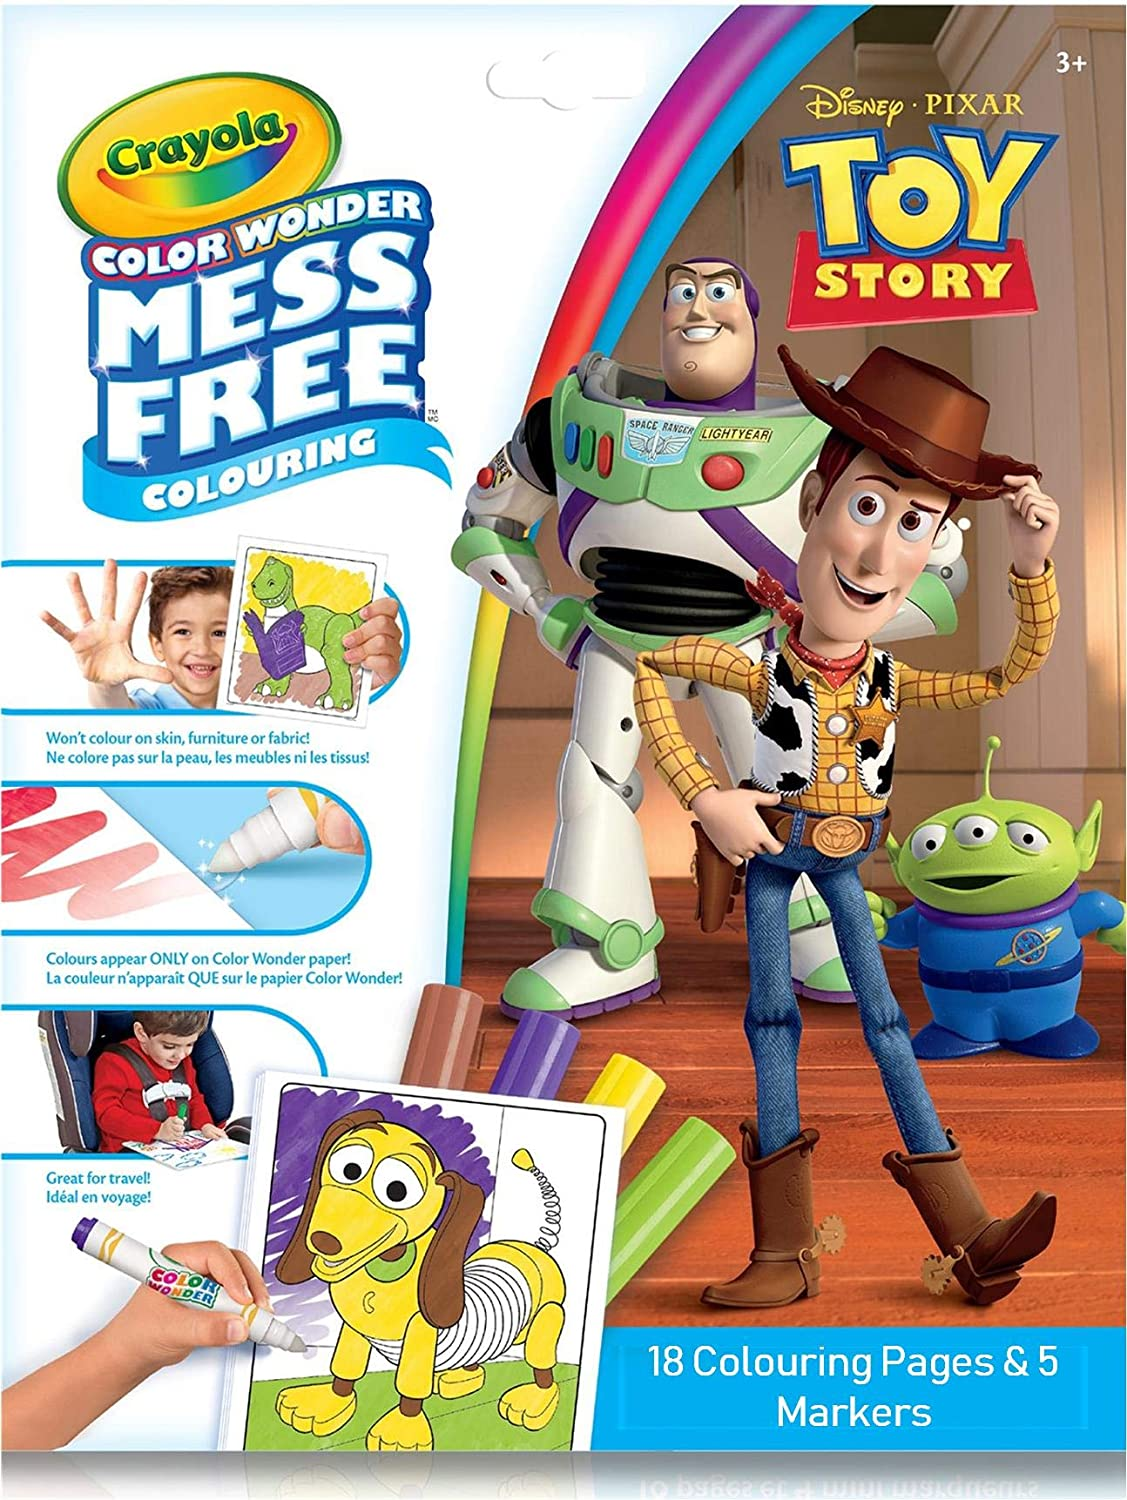 18 Pages Mess Free Coloring Gift Crayola Toy Story Color Wonder Coloring Book /& Markers